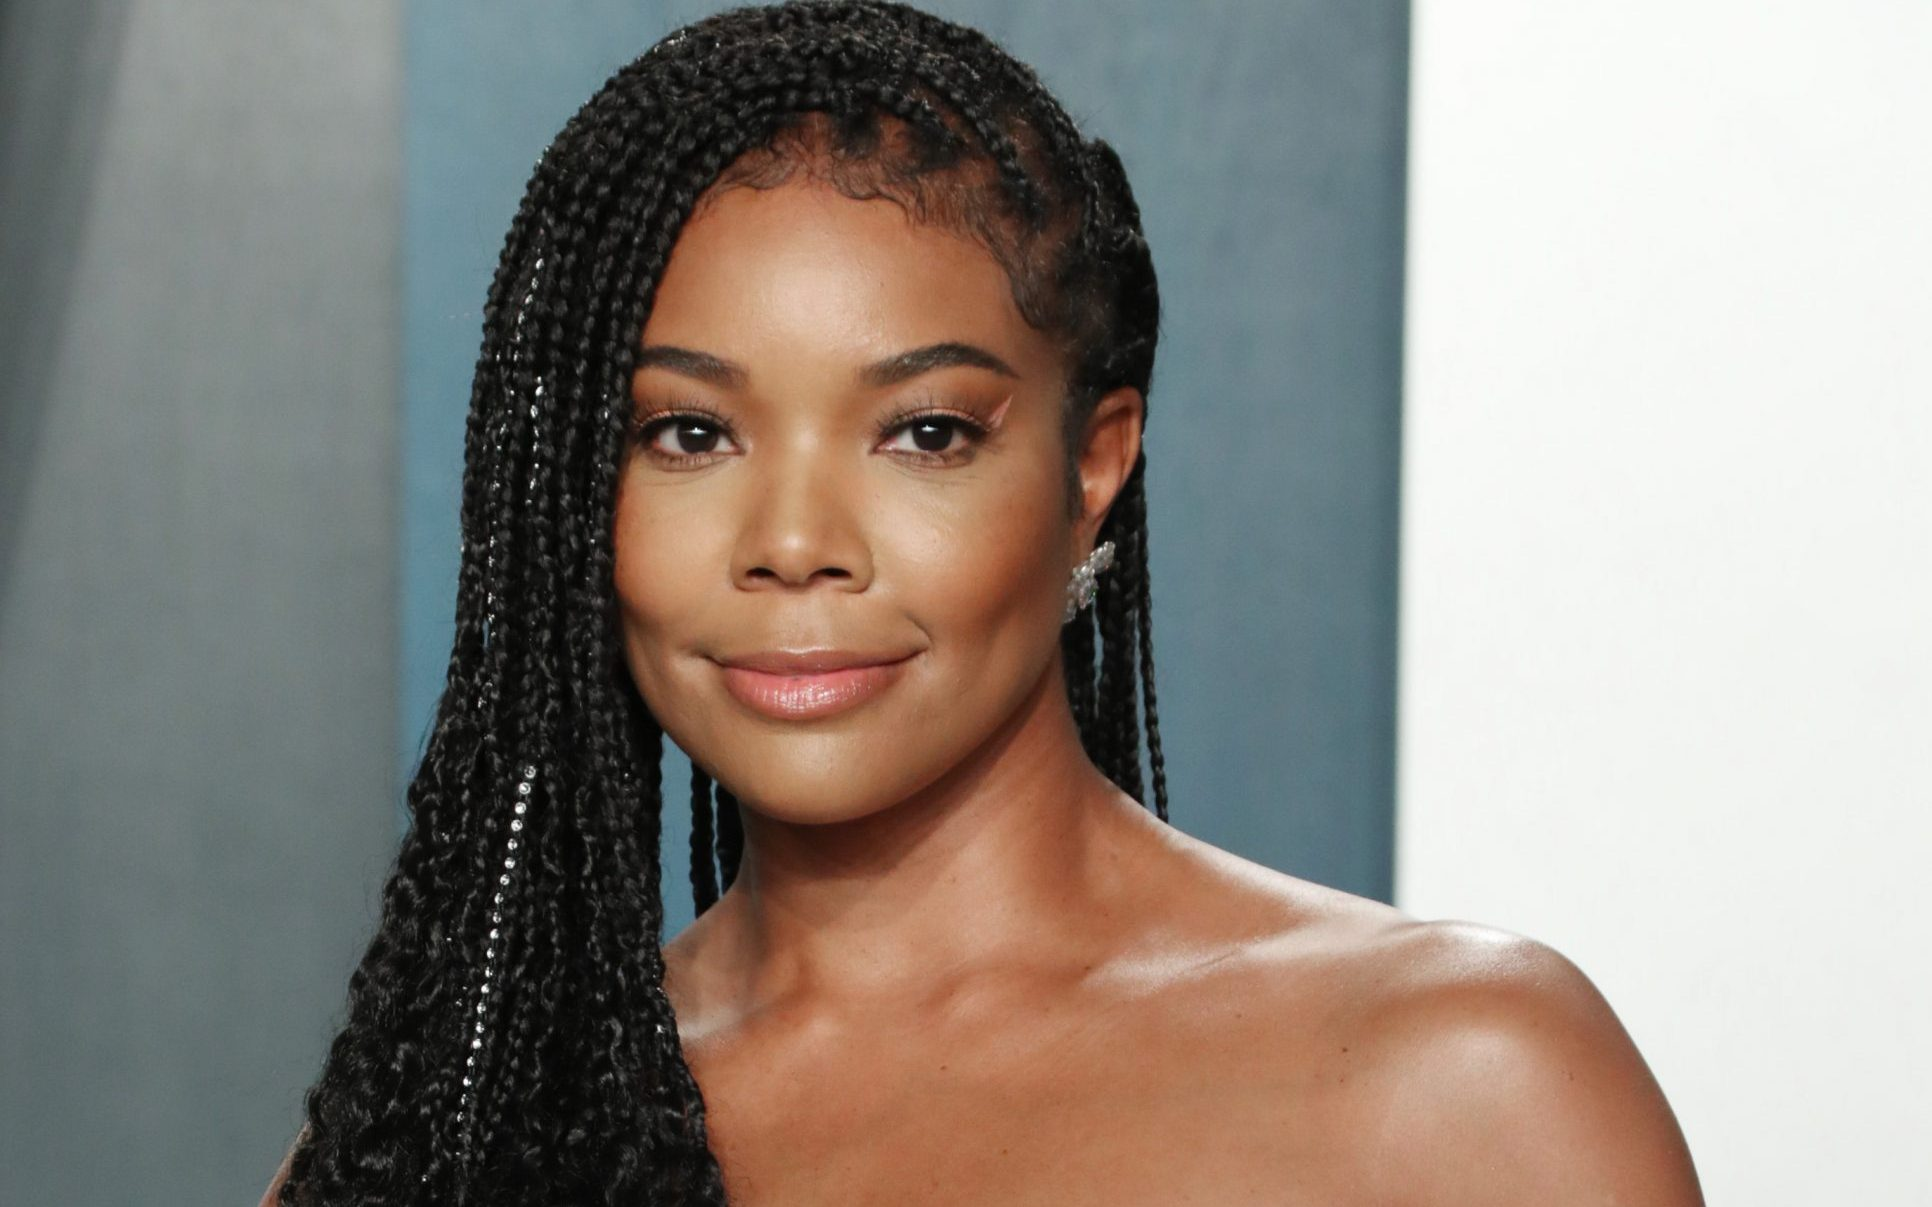 Gabrielle Union Alleges NBC Chief Threatened Her for Whistleblowing in New Harassment Lawsuit